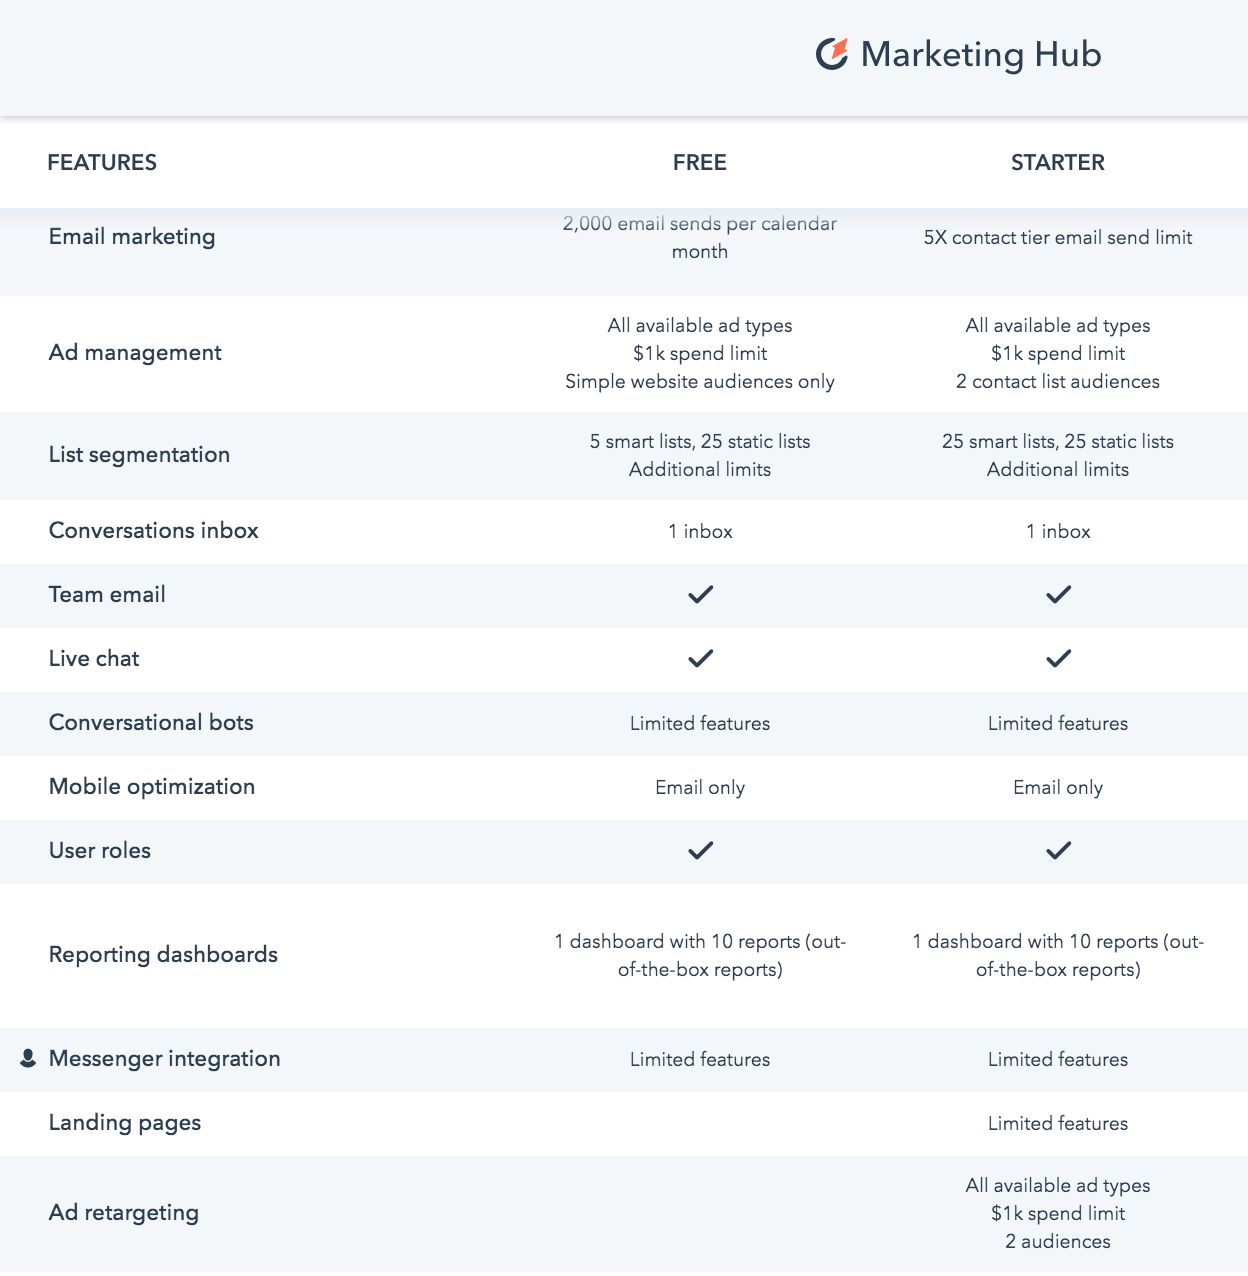 HubSpot's Marketing Hub package features for the Free and Hub Starter tiers